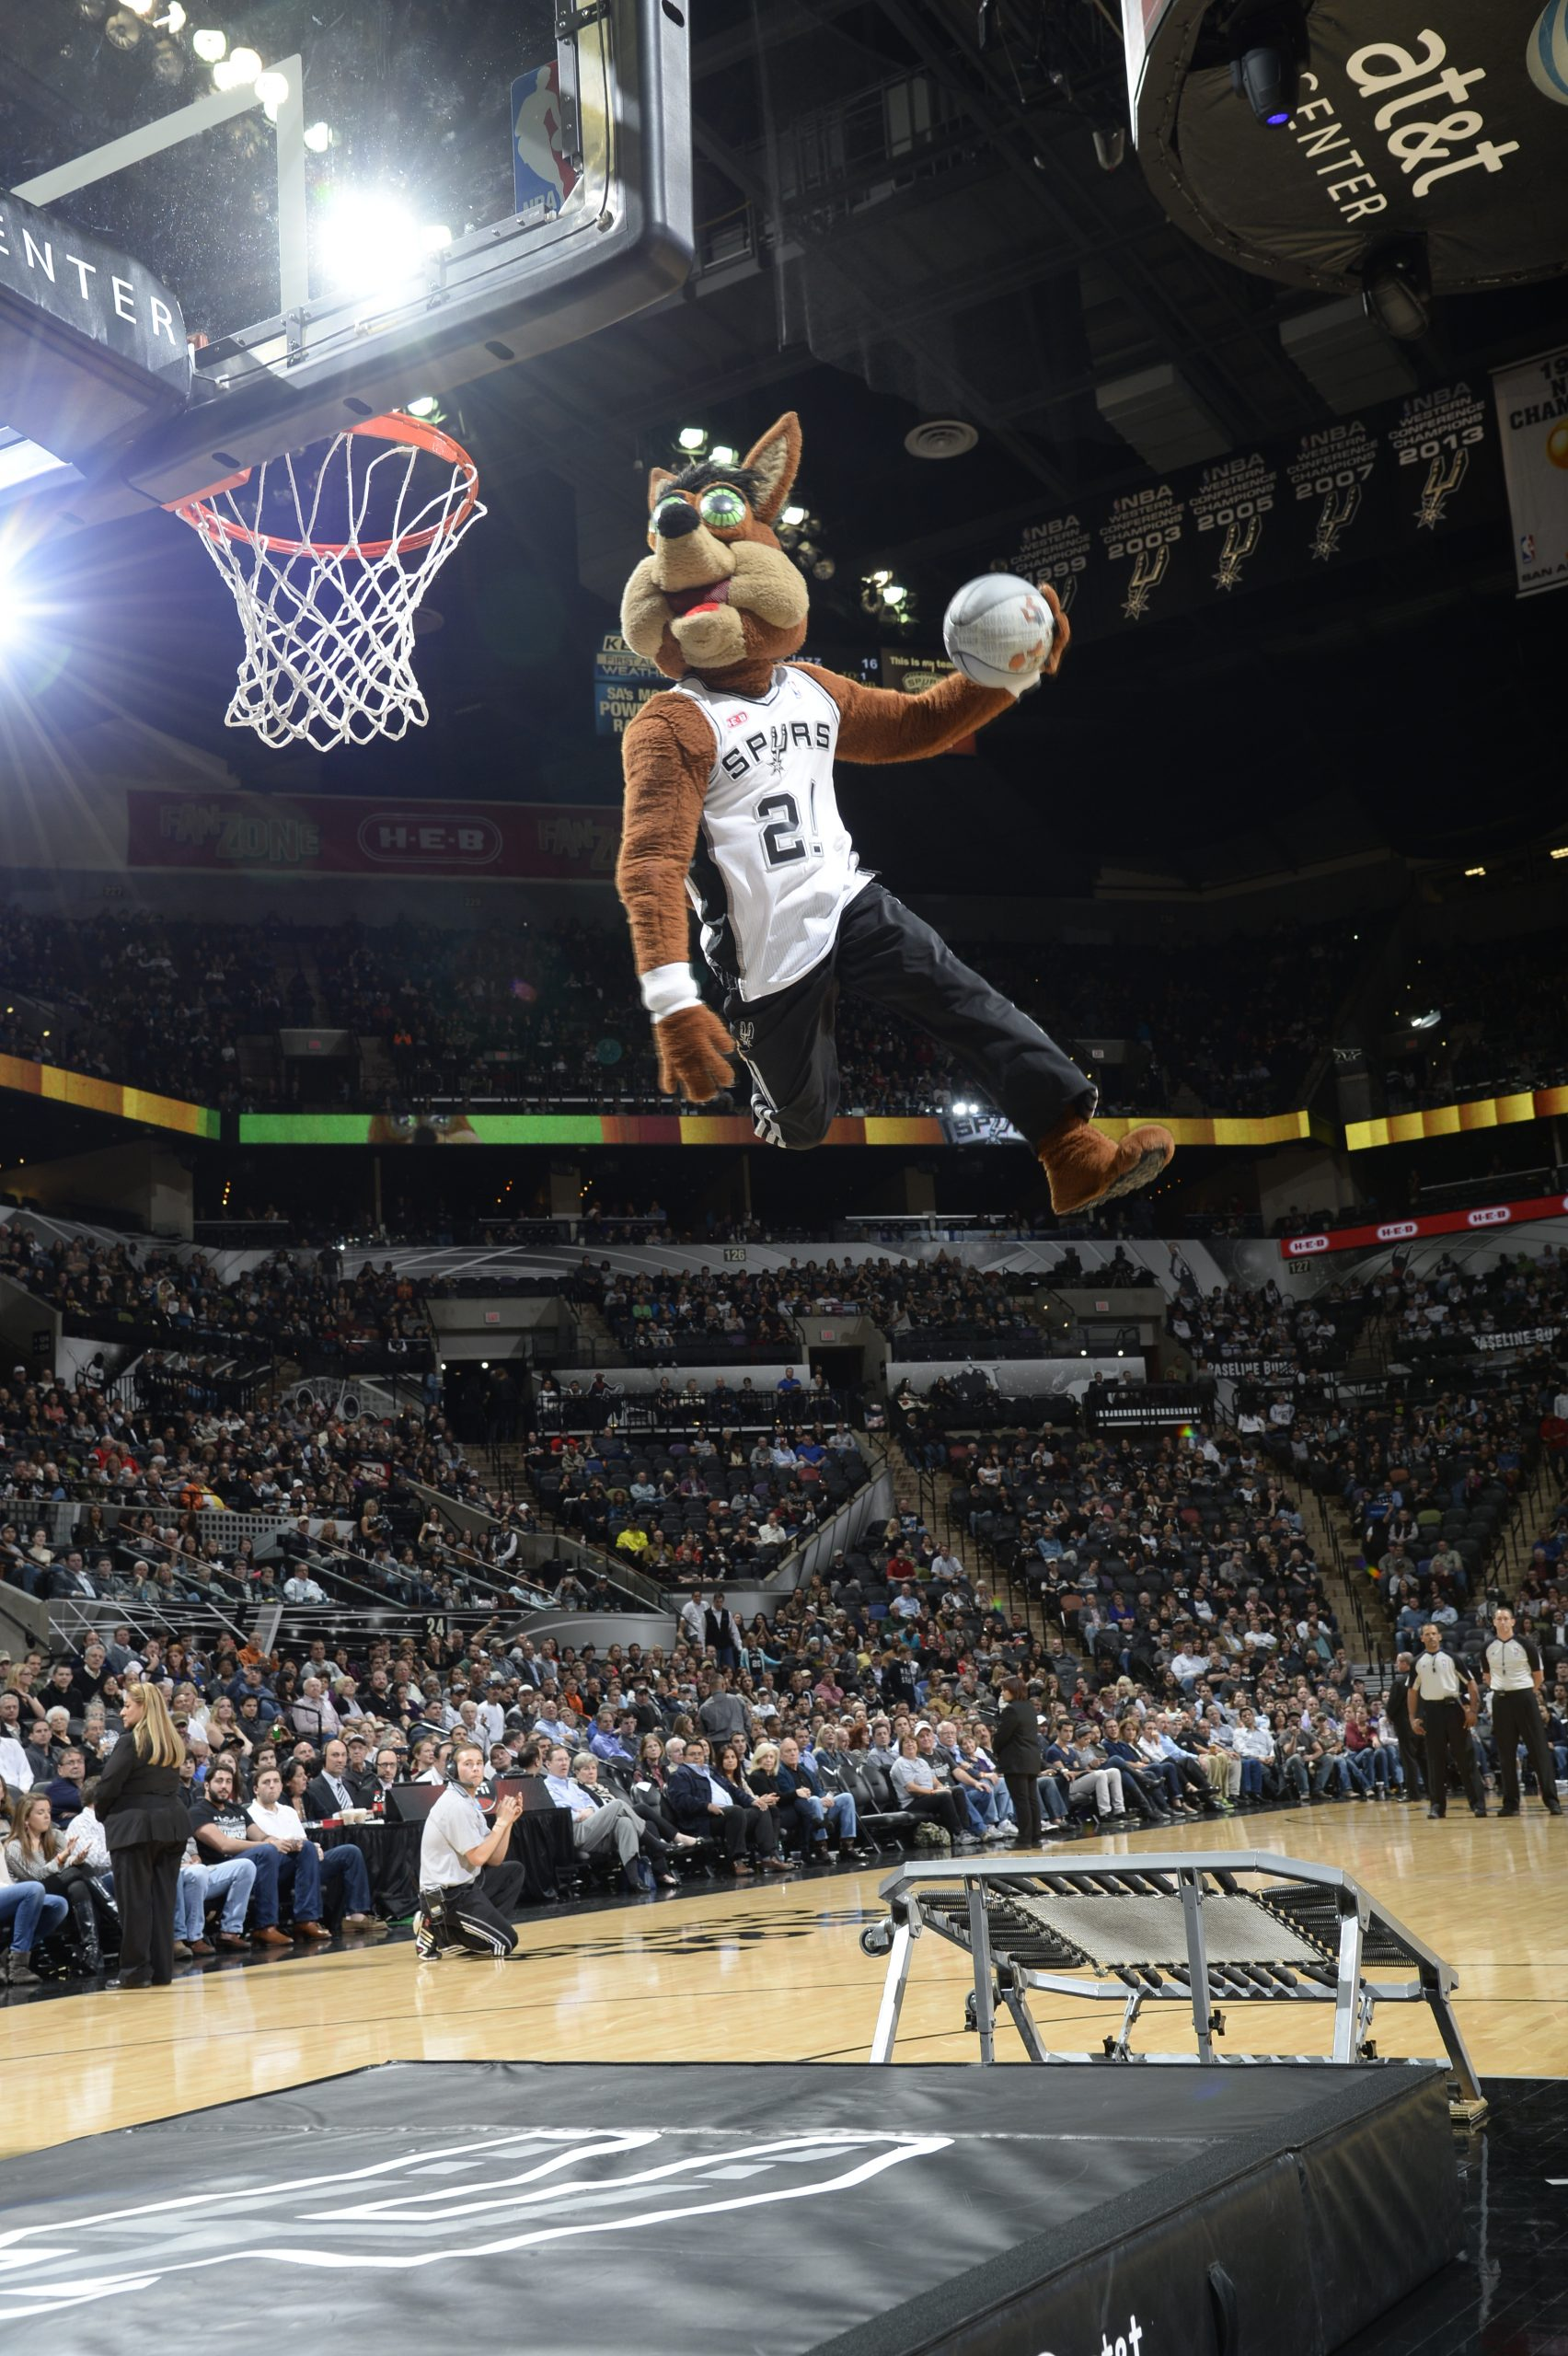 Rob Wicall (The Coyote) launches himself high in the air for his signature one armed dunk.